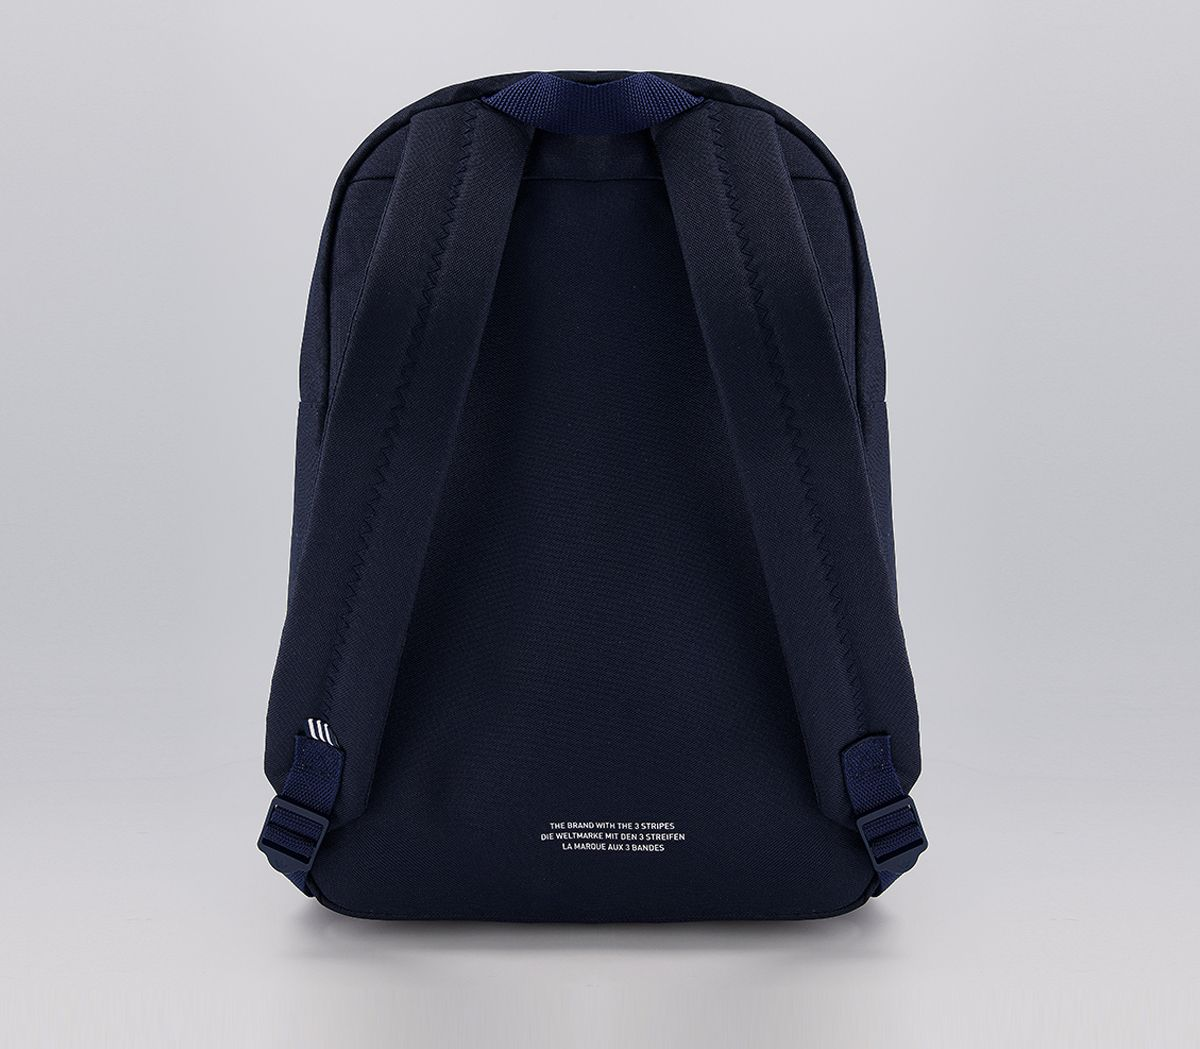 Accessories Adidas Classic Trefoil Backpacks Collegiate Navy White Accessories